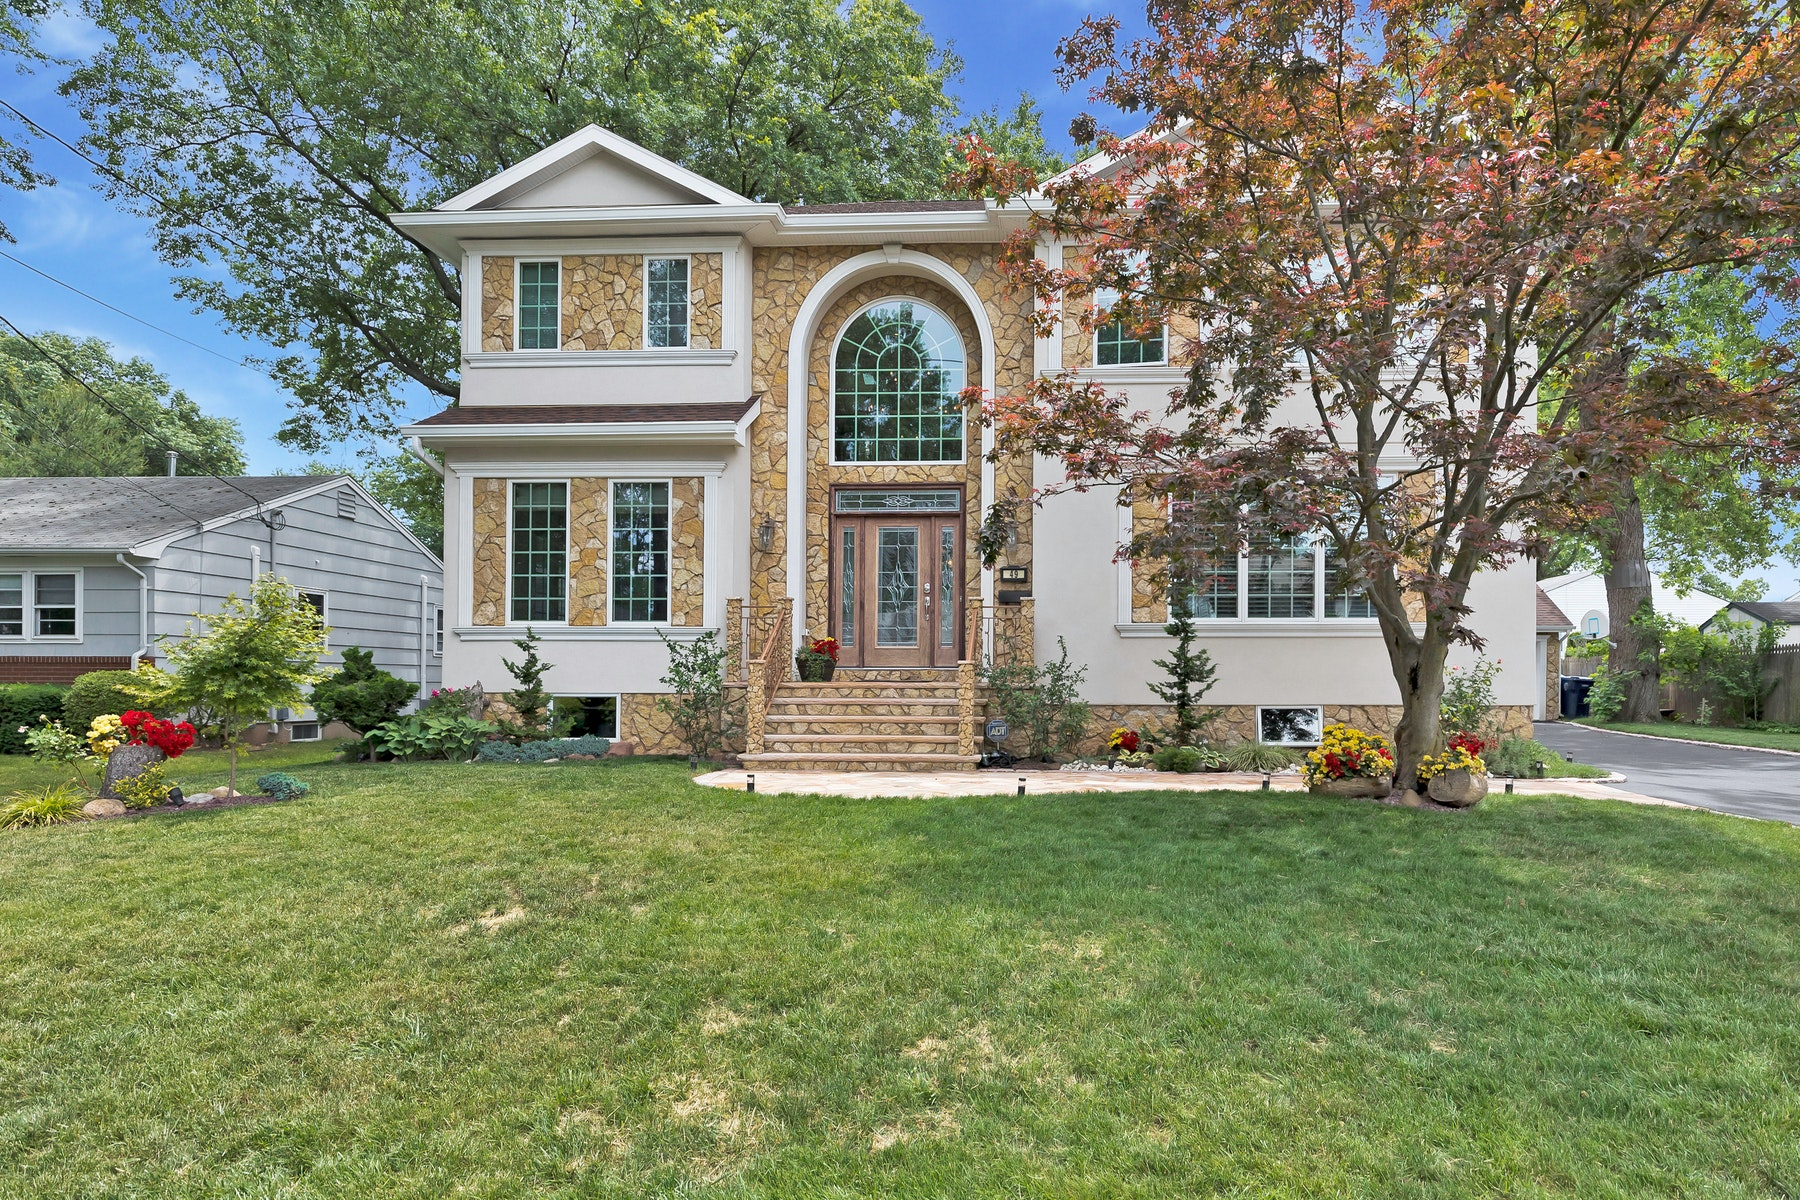 Single Family Homes for Sale at Custom Colonial 49 Nassau St Clark, New Jersey 07066 United States